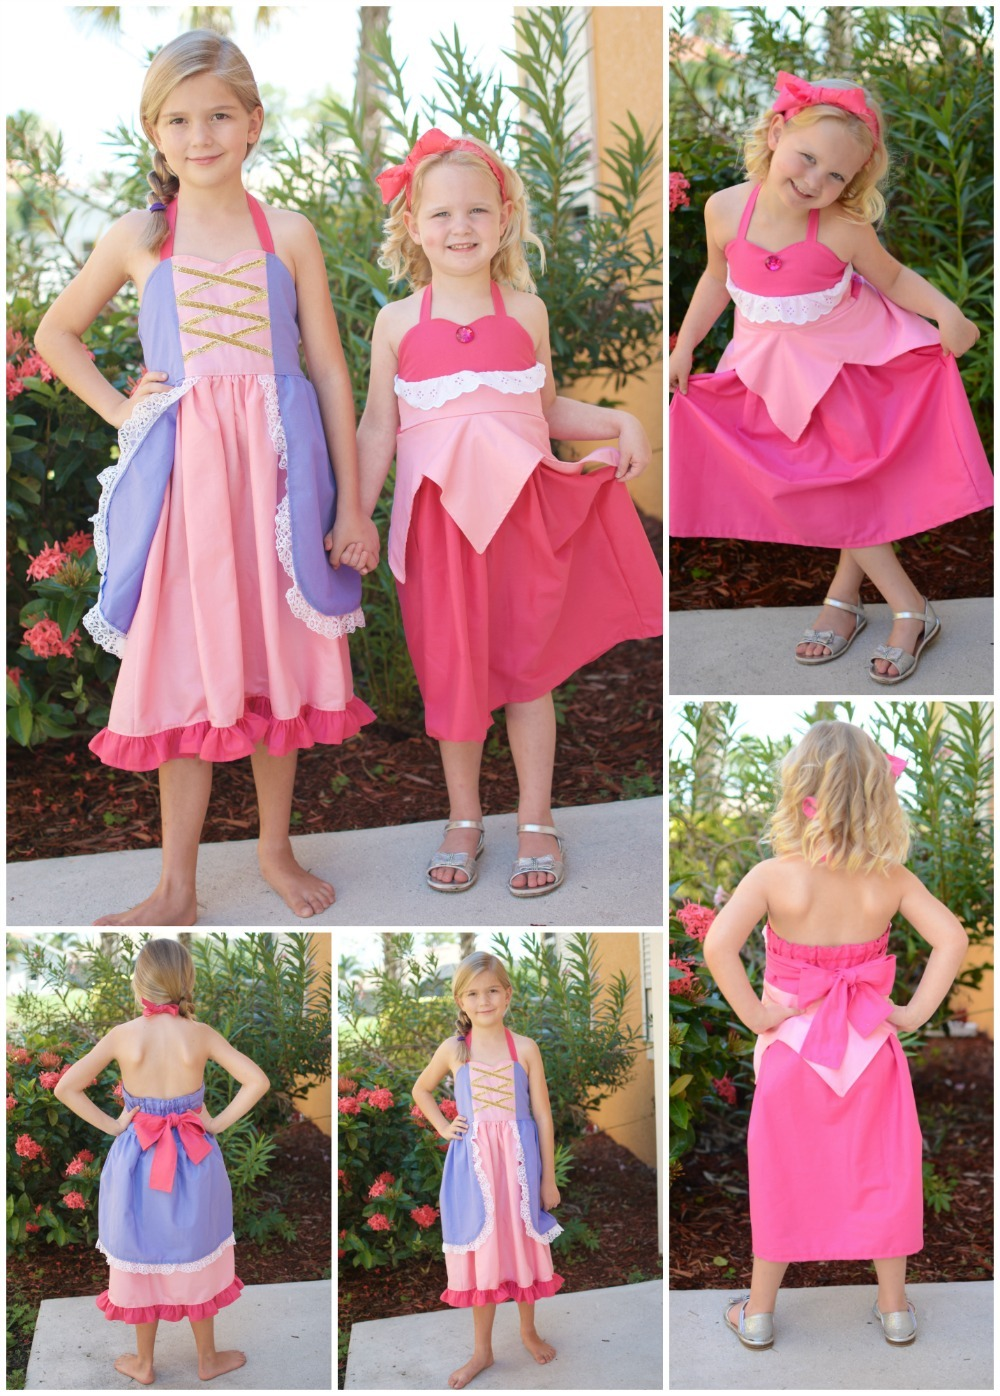 Looking for a cute way to make your Disney Vacation extra special for your little princess. These custom made dresses are so sweet and kind of a steal compared to the costumes you can purchase at the parks themselves. Definitely one of the top 10 things you want to buy before visiting the most magical place on earth. SunshineandHurricanes.com